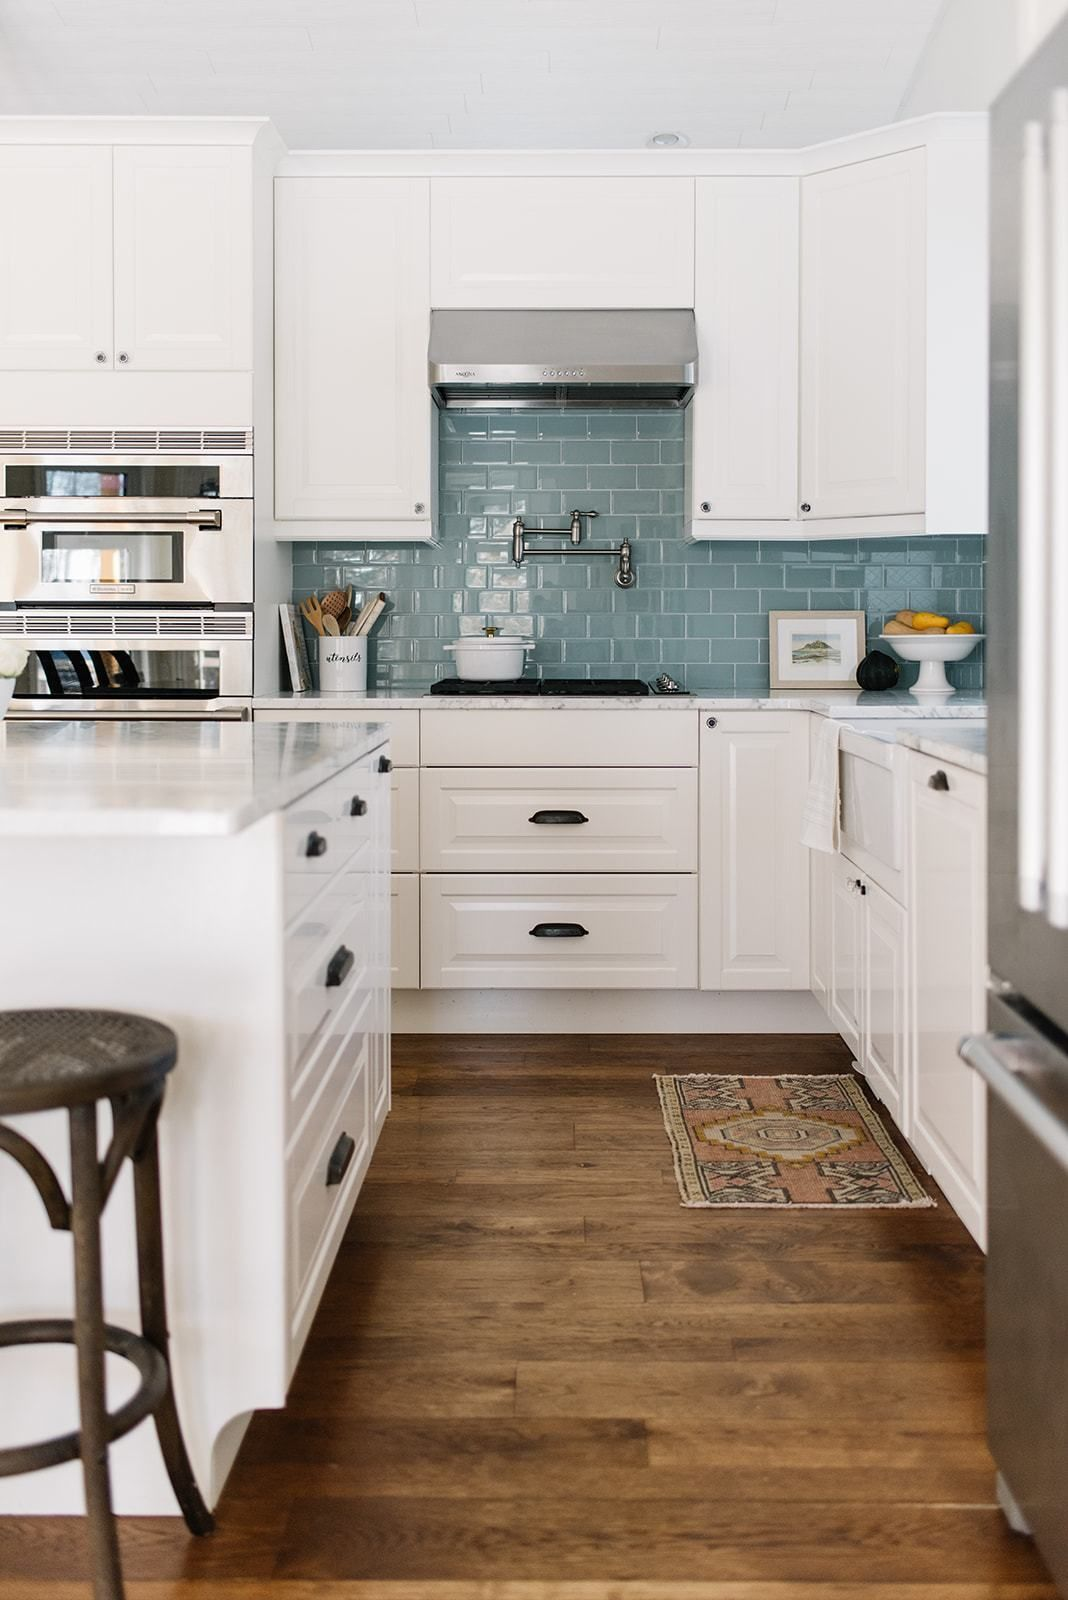 10 Ways to Design a Custom Kitchen on a Budget - T